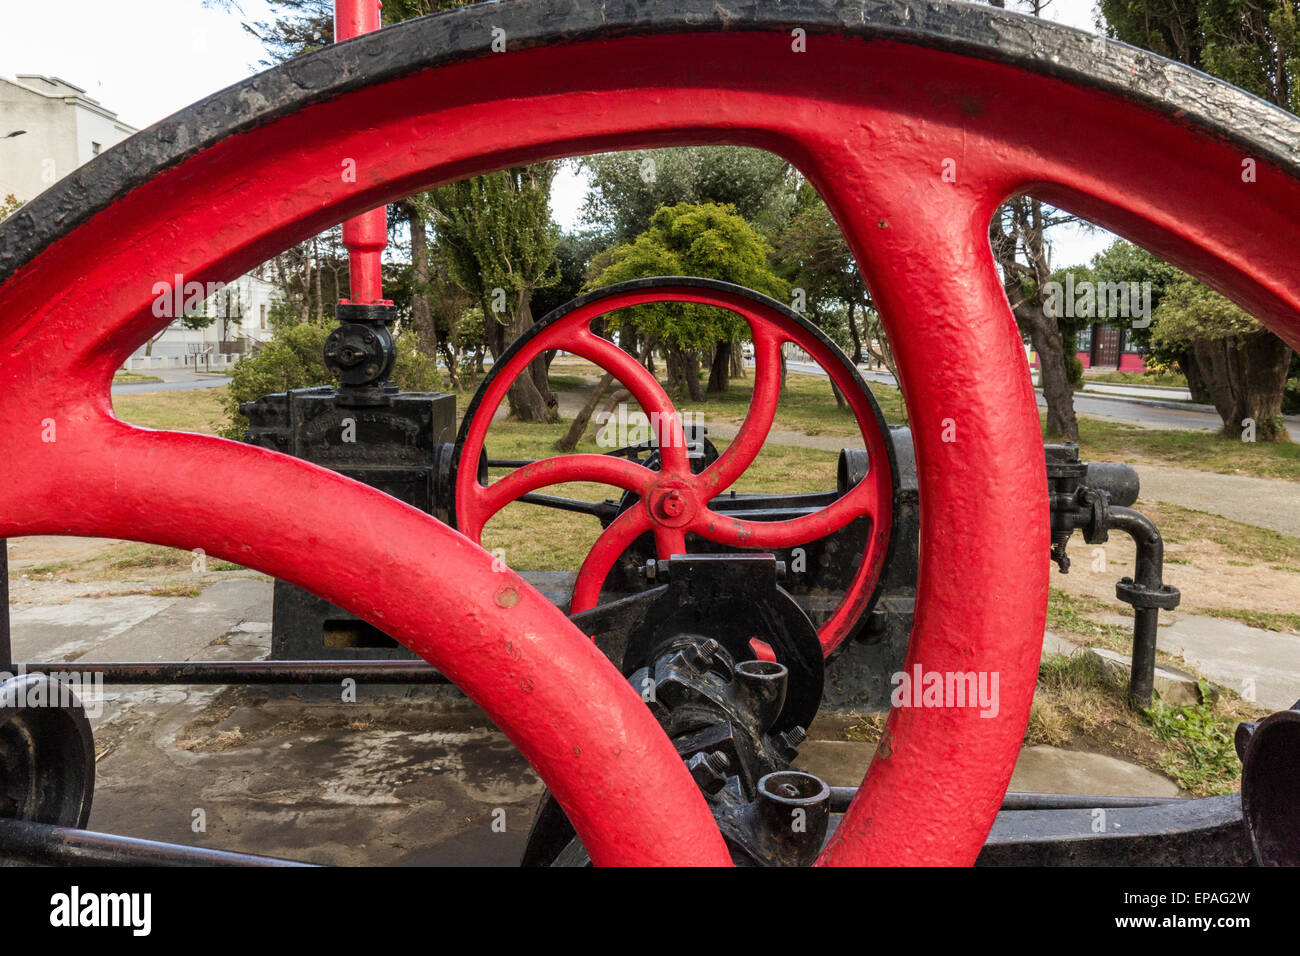 detail of obsolete steam powered pumping machine, Punta Arenas, Chile - Stock Image